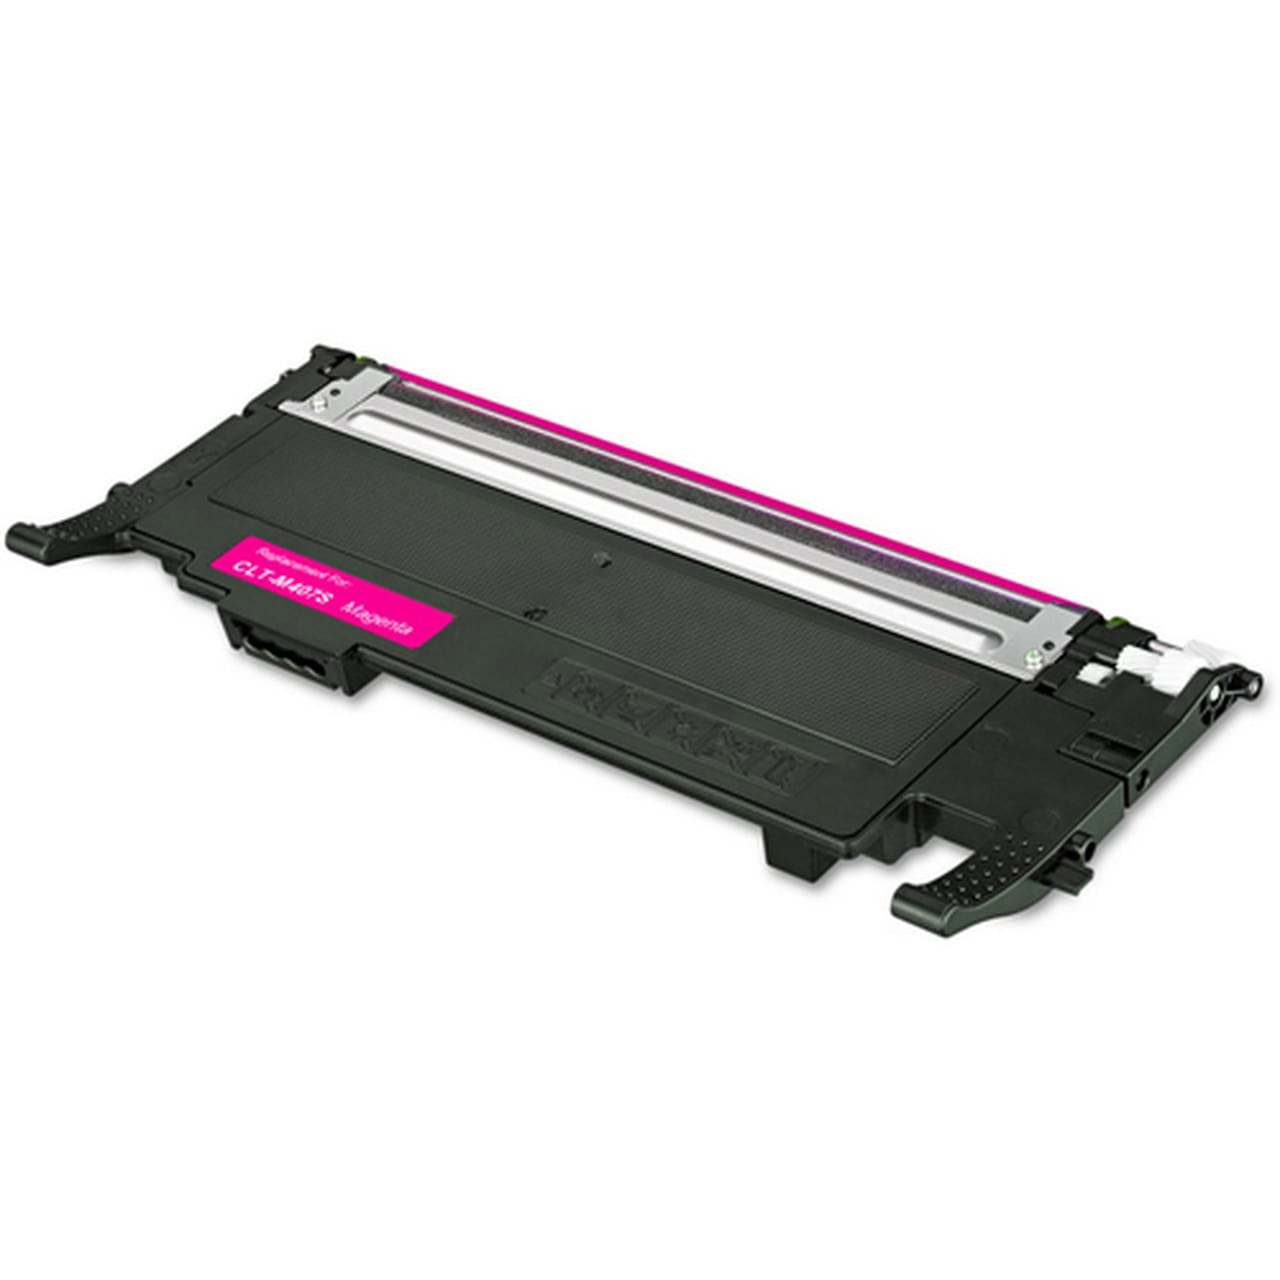 CLT-M407S Toner Cartridge - Samsung Remanufactured  (Magenta)